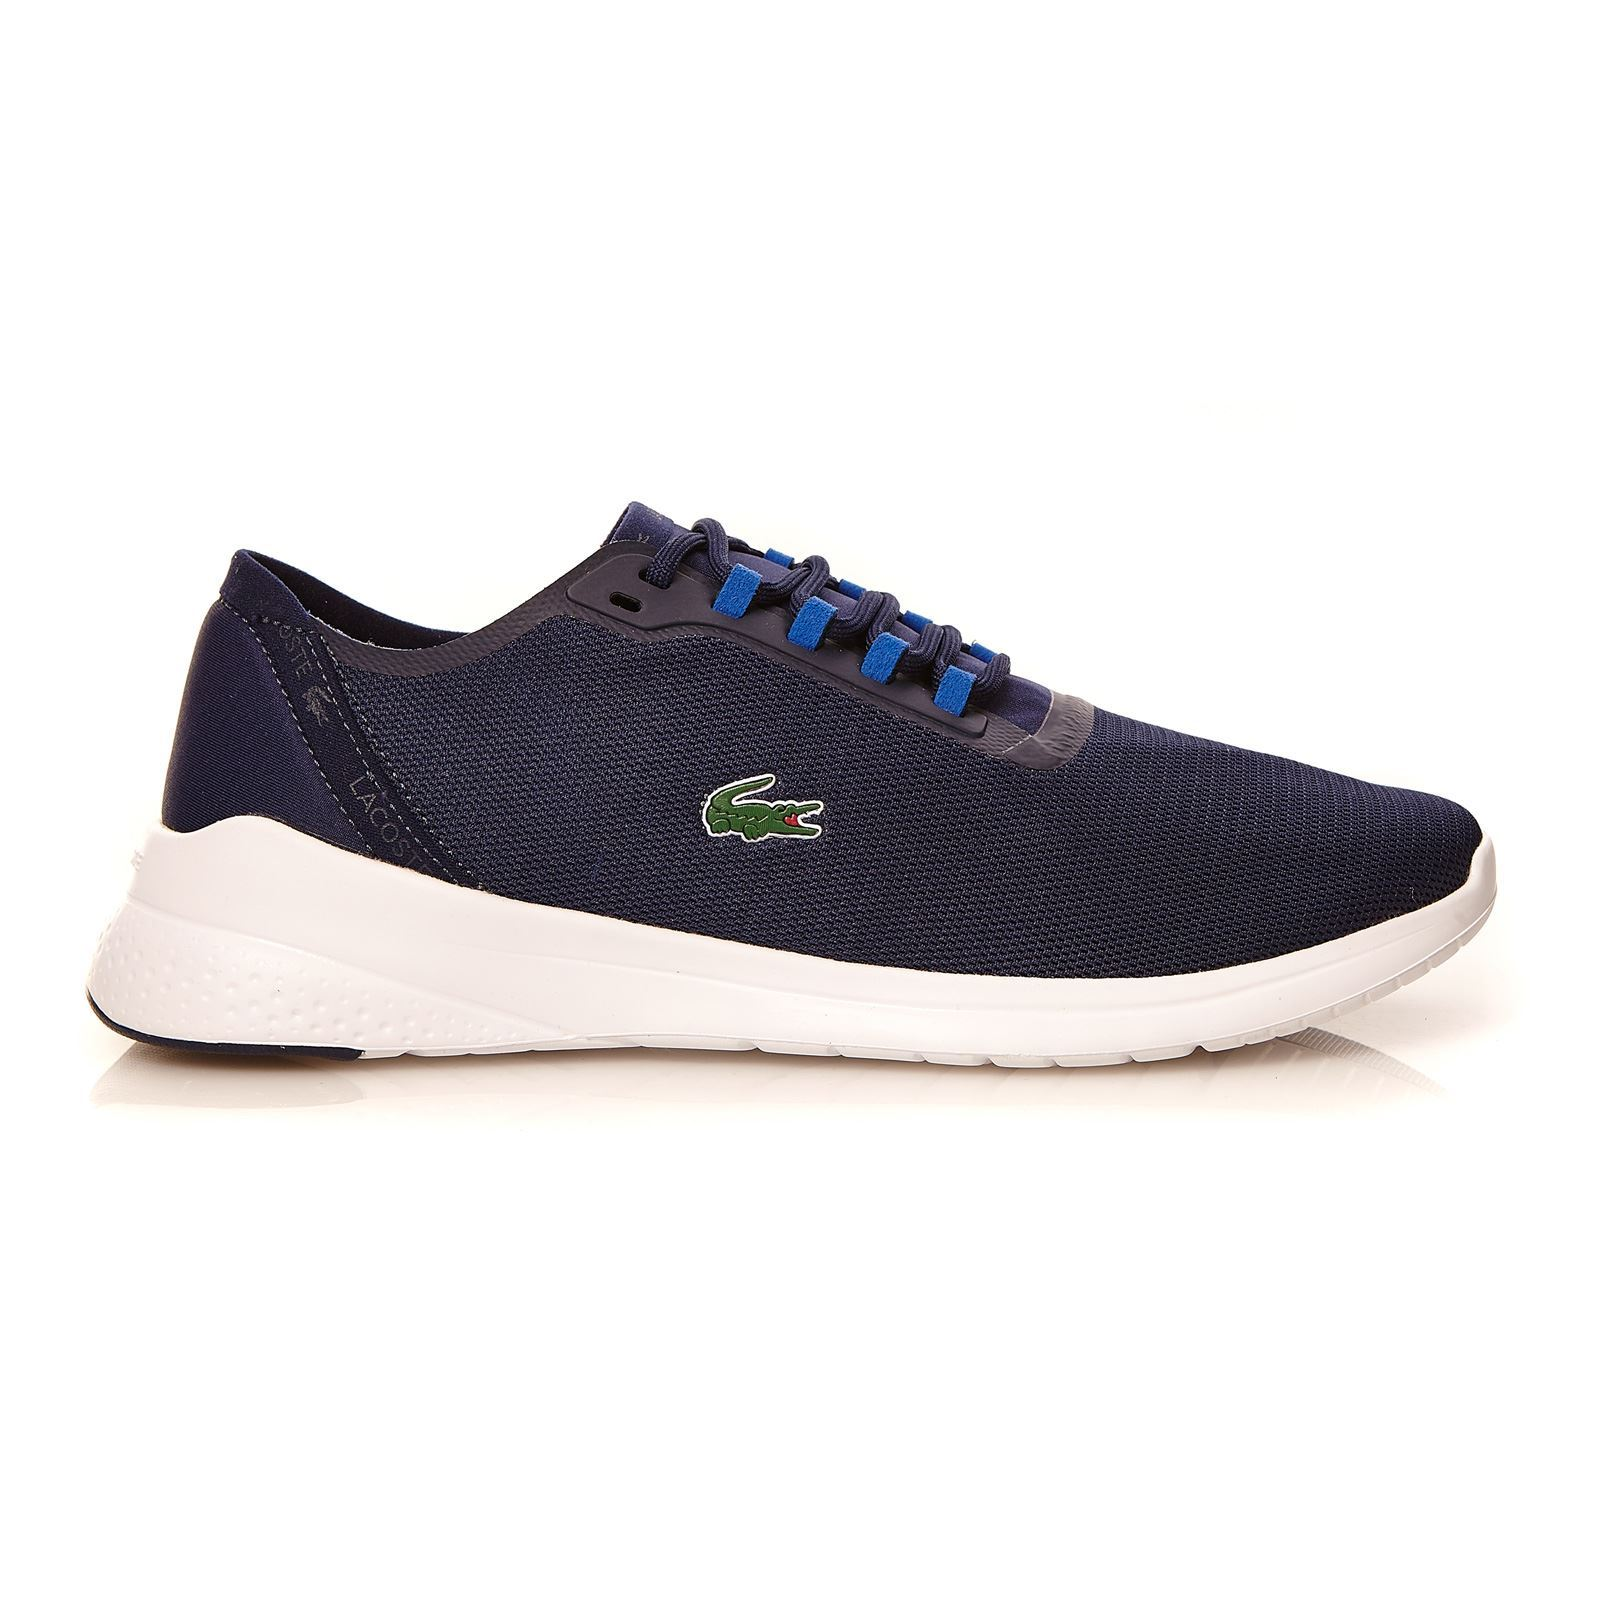 Lacoste LT Fit 118 Marine